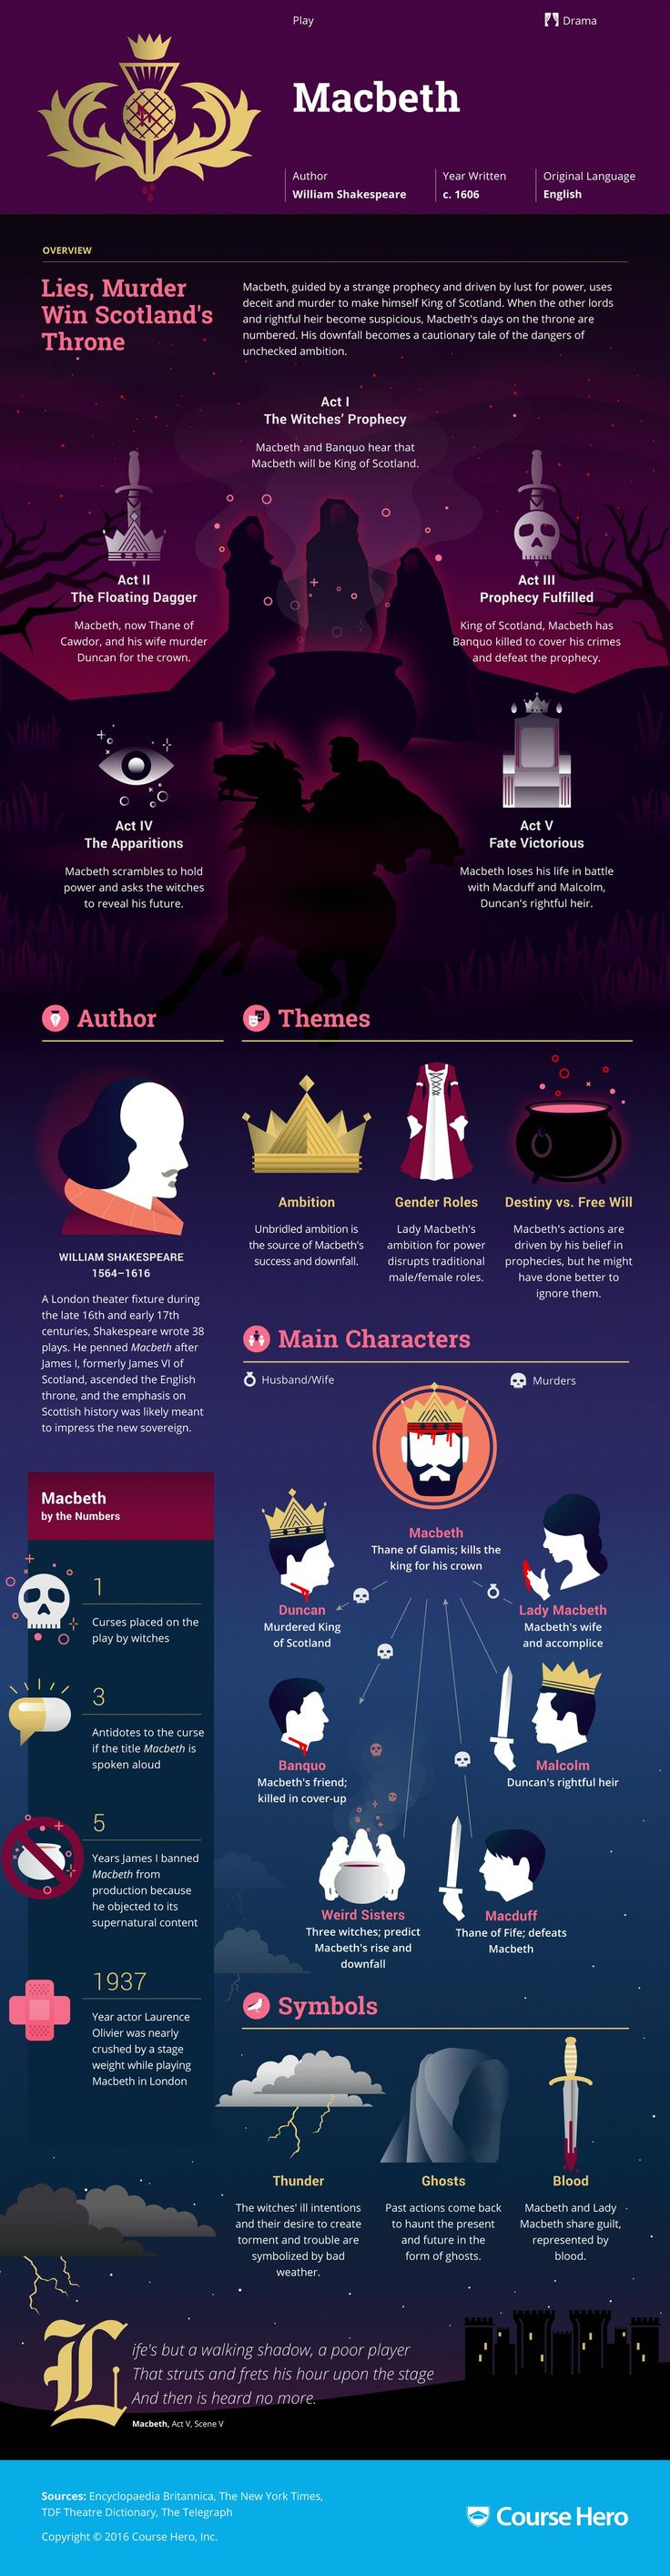 best ideas about shakespeare macbeth english macbeth infographic course hero